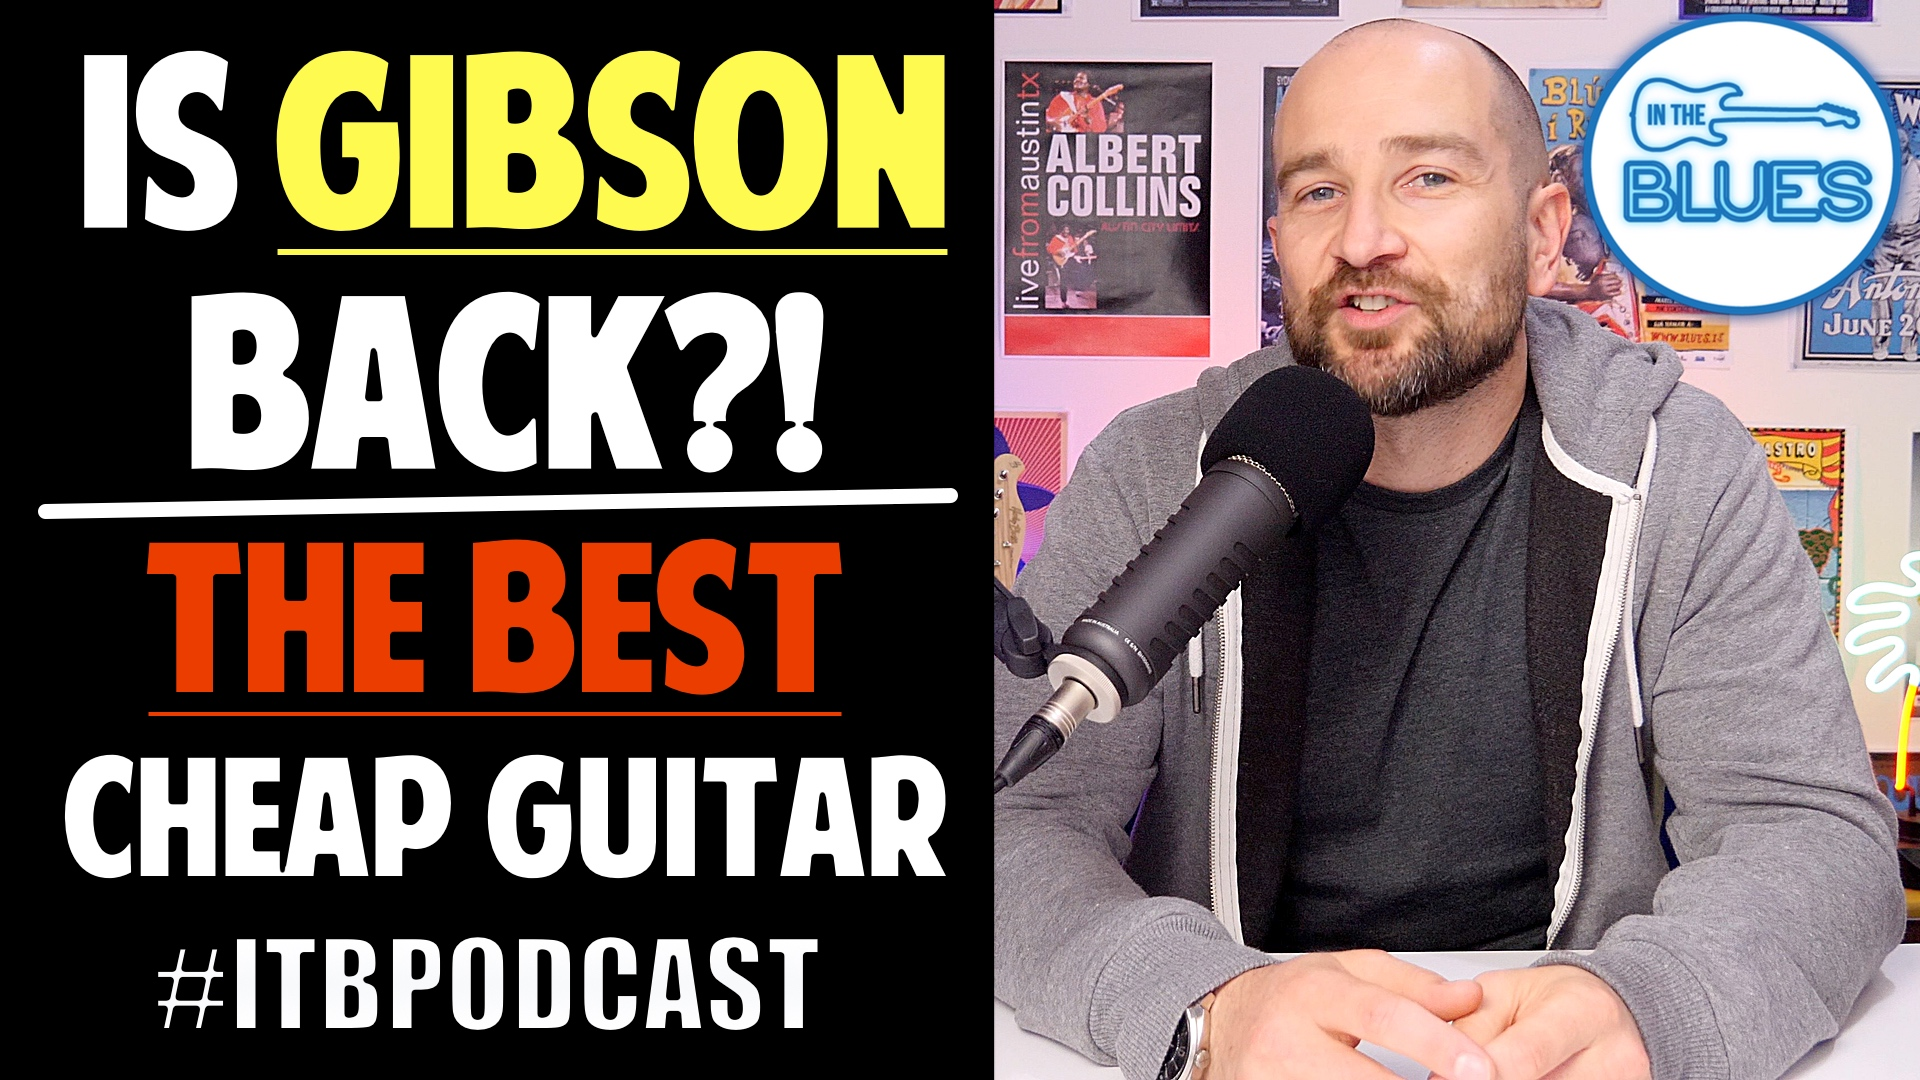 ITBPODCAST APRIL 18 2019 Guitar podcast